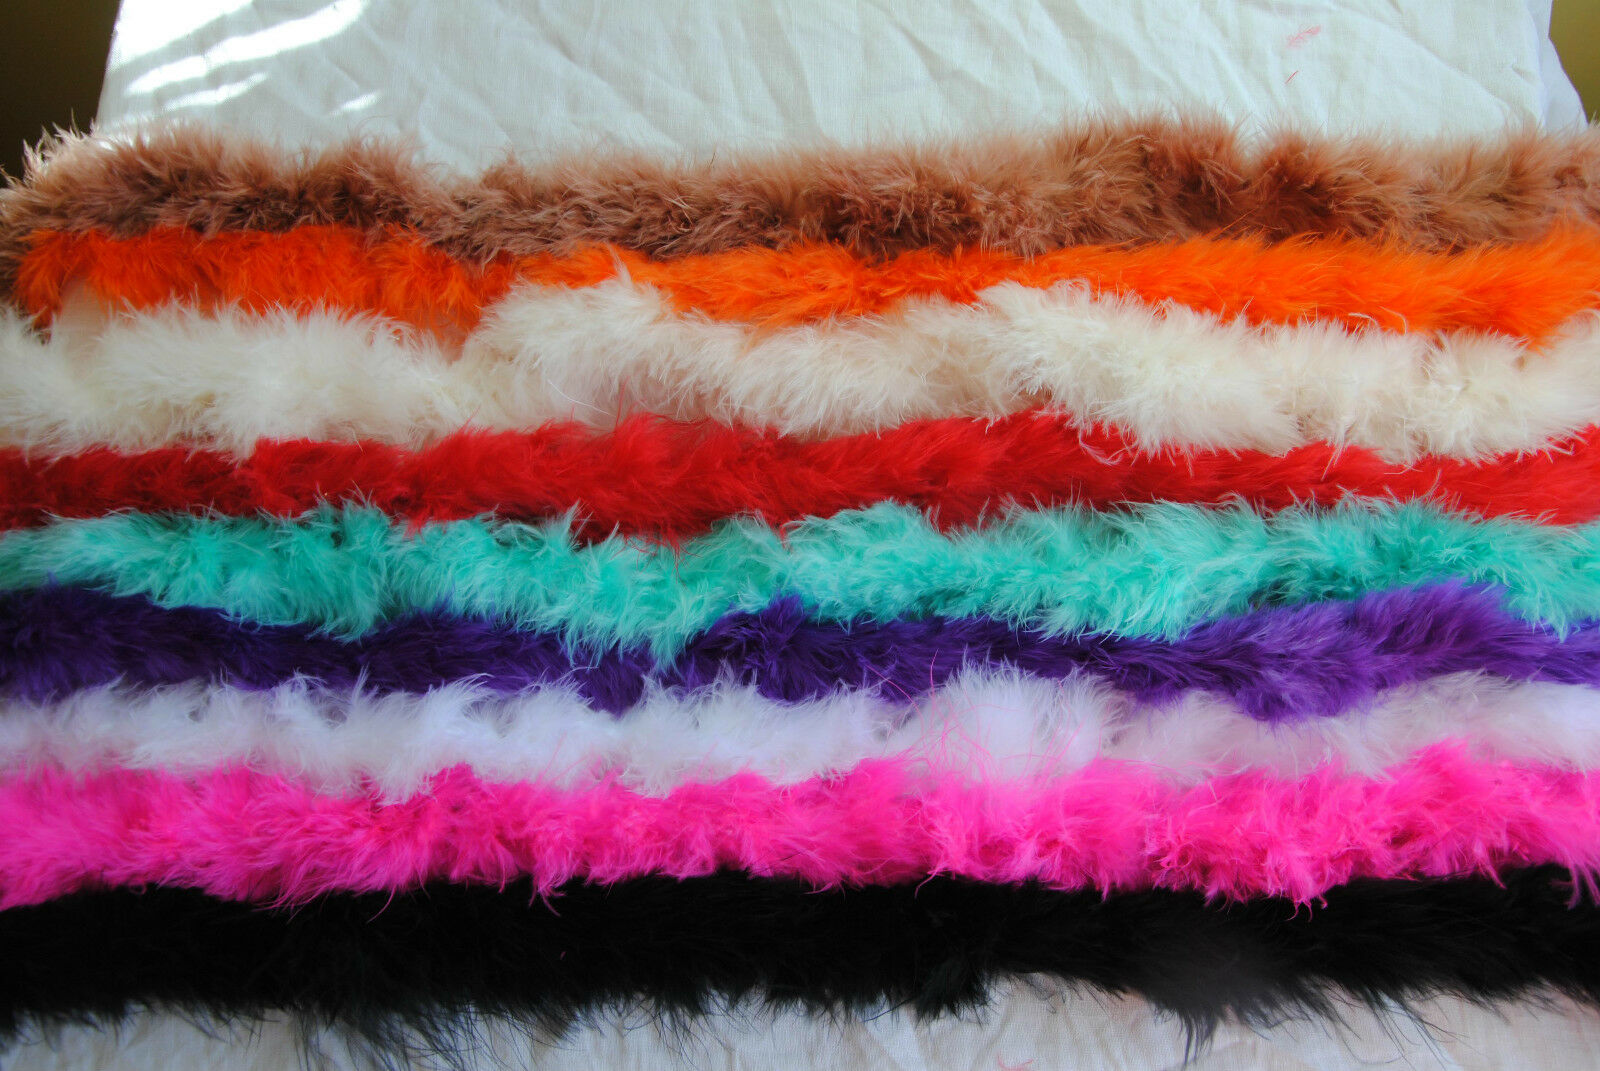 2M Feather Boa Strip Fluffy Craft Costume Dressup Party Performance Decoration